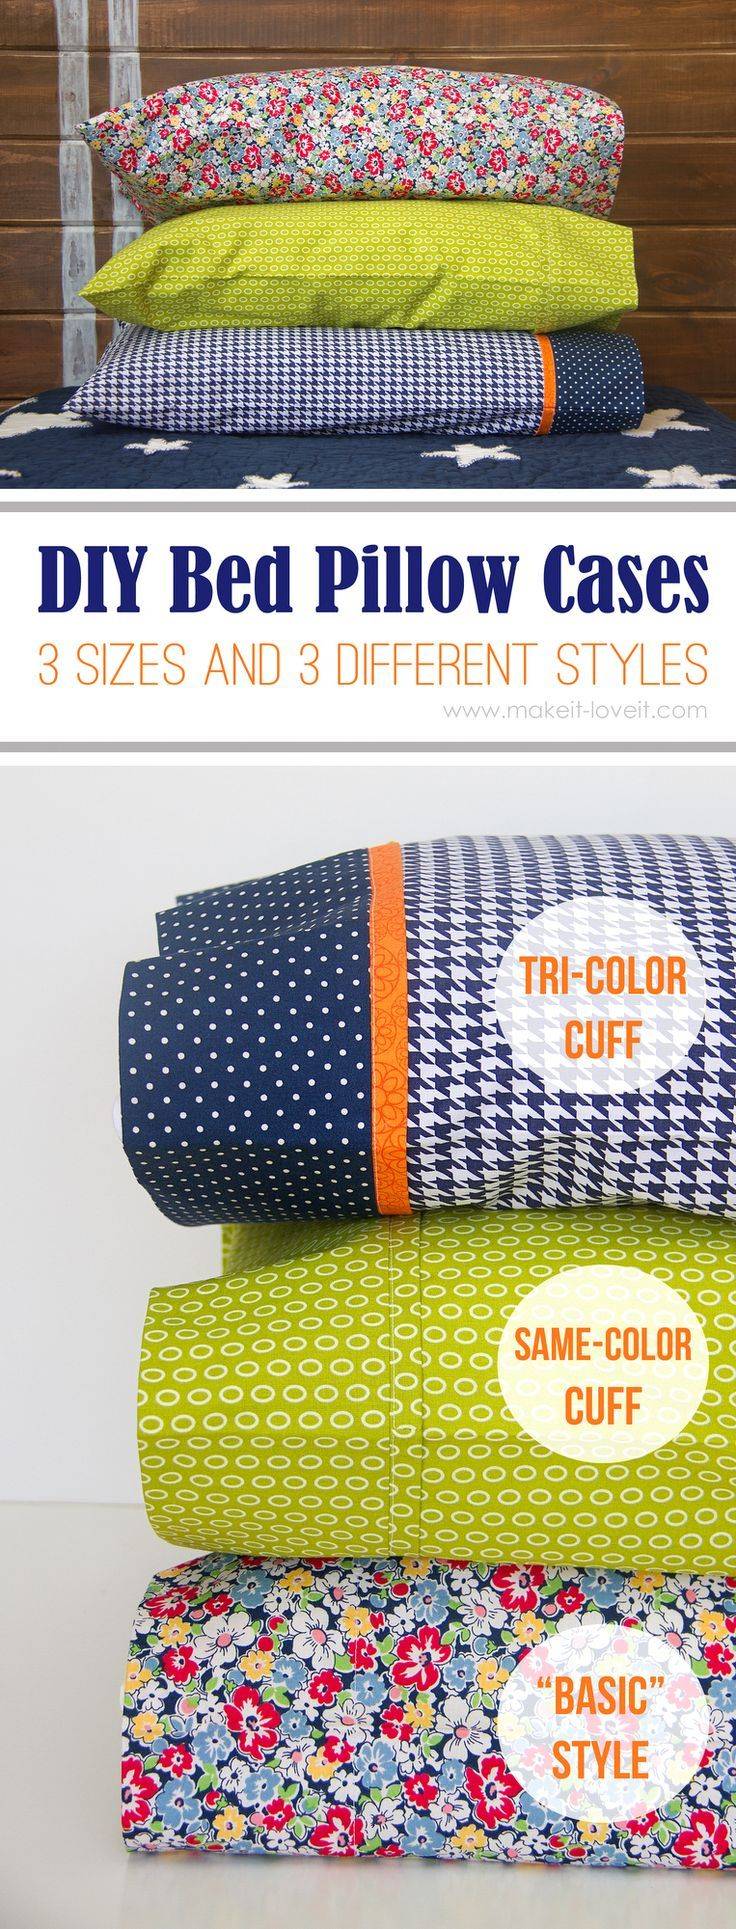 DIY Bed Pillow Cases 3 SIZES AND IN 3 DIFFERENT COLOURS